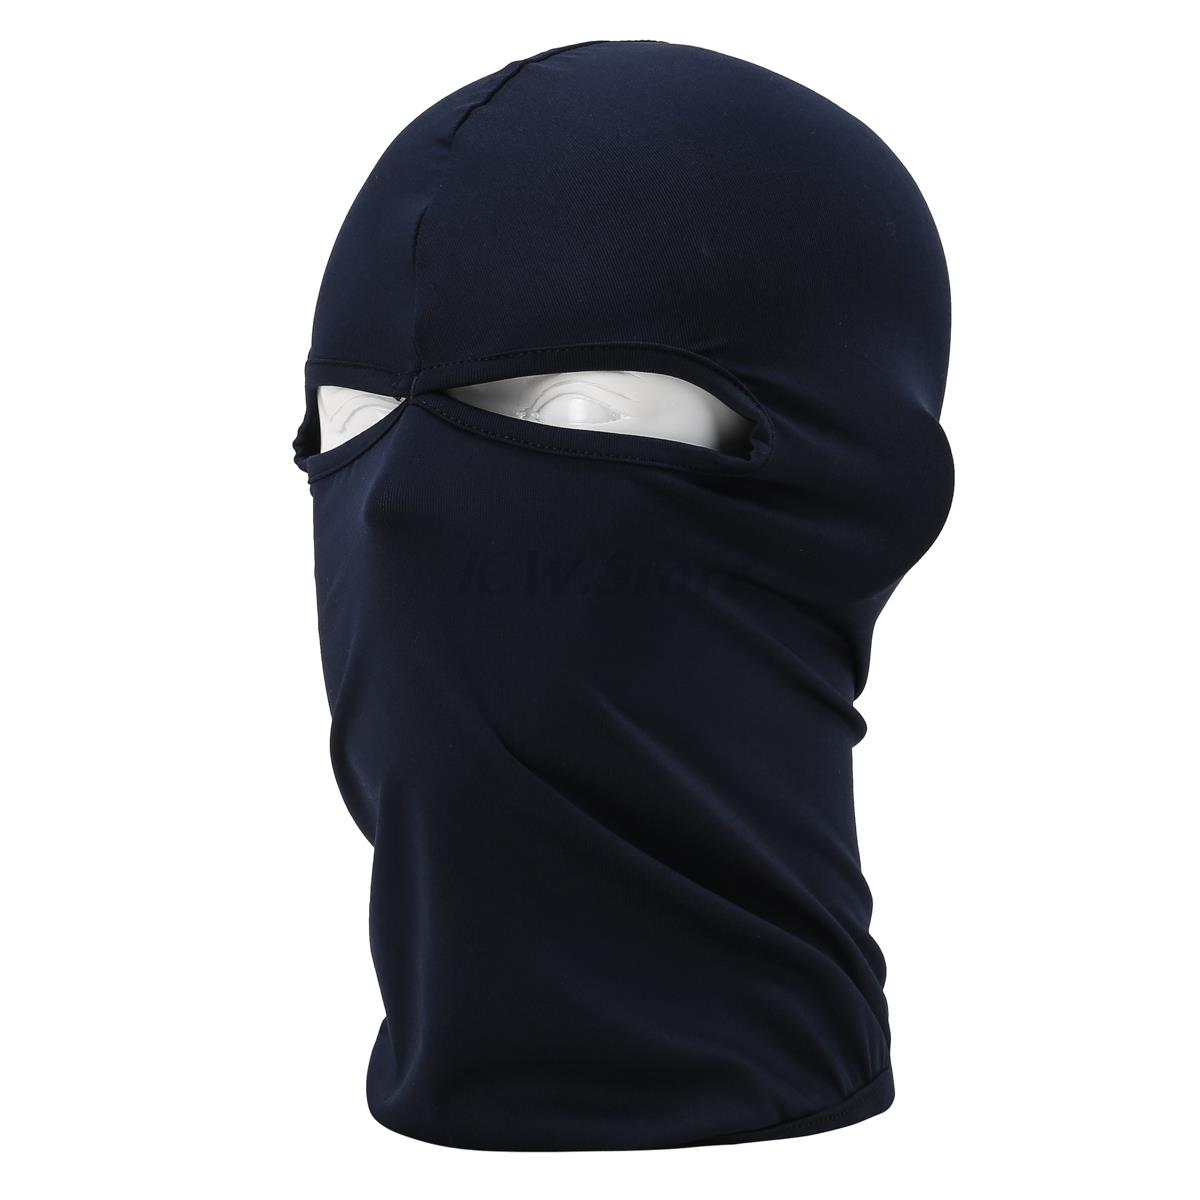 2017 New 2 Hole Balaclava Hat Hunting Motorcycle Cycling Headwear Military Tactical CS War Game Face Full Ski Mask Dark Blue airsoft adults cs field game skeleton warrior skull paintball mask